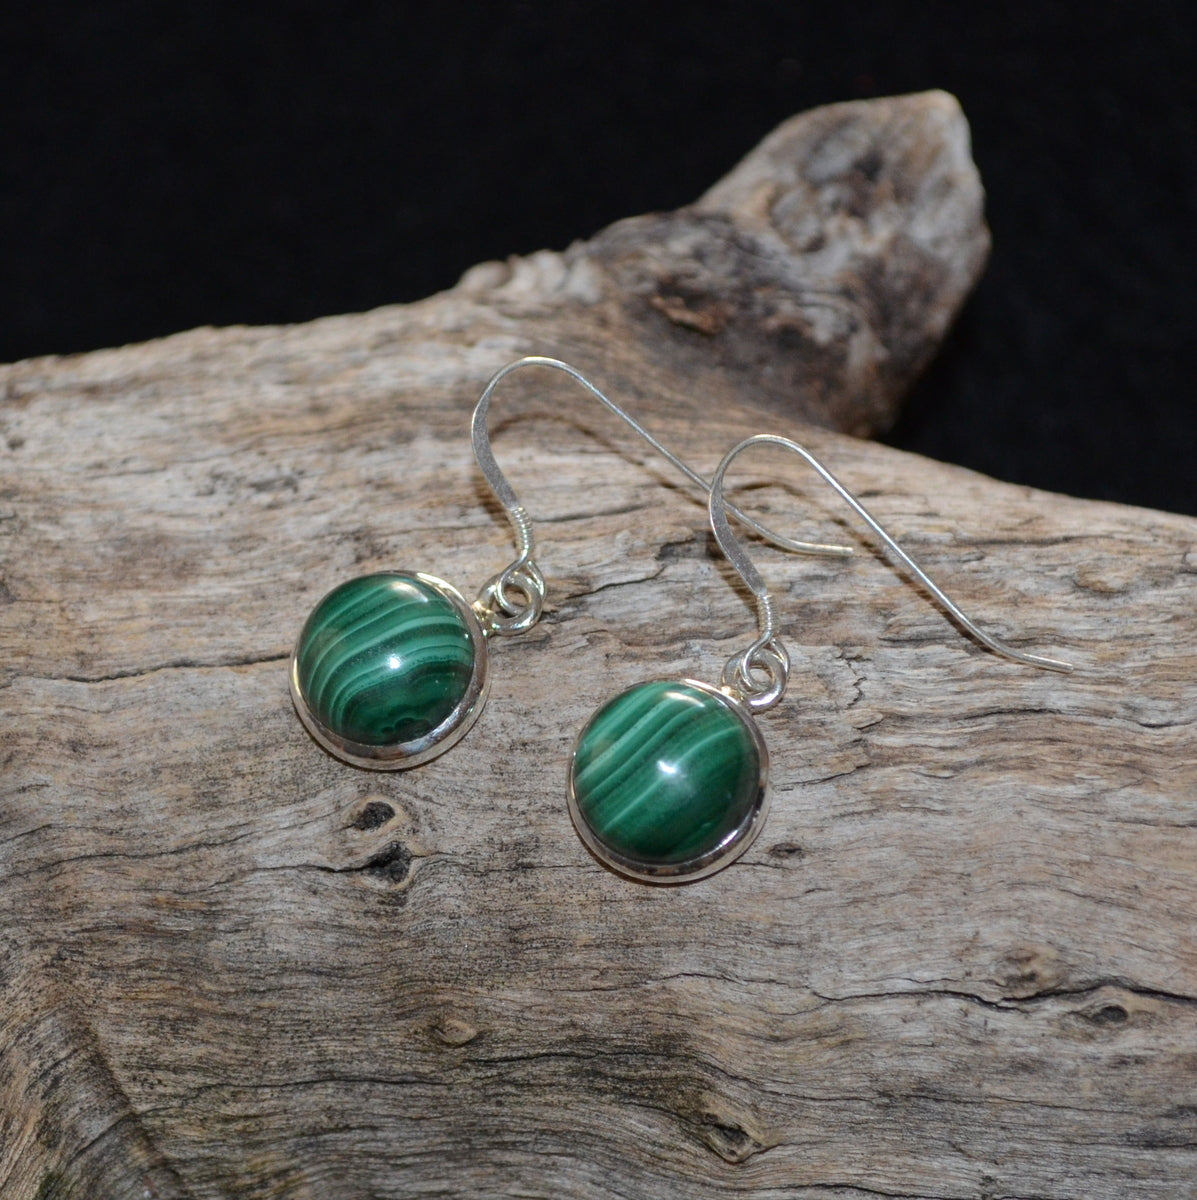 Malachite Silver Earrings - Protective Truth Heart Healing - Shop Now at Illiom Crystals - Now with Afterpay